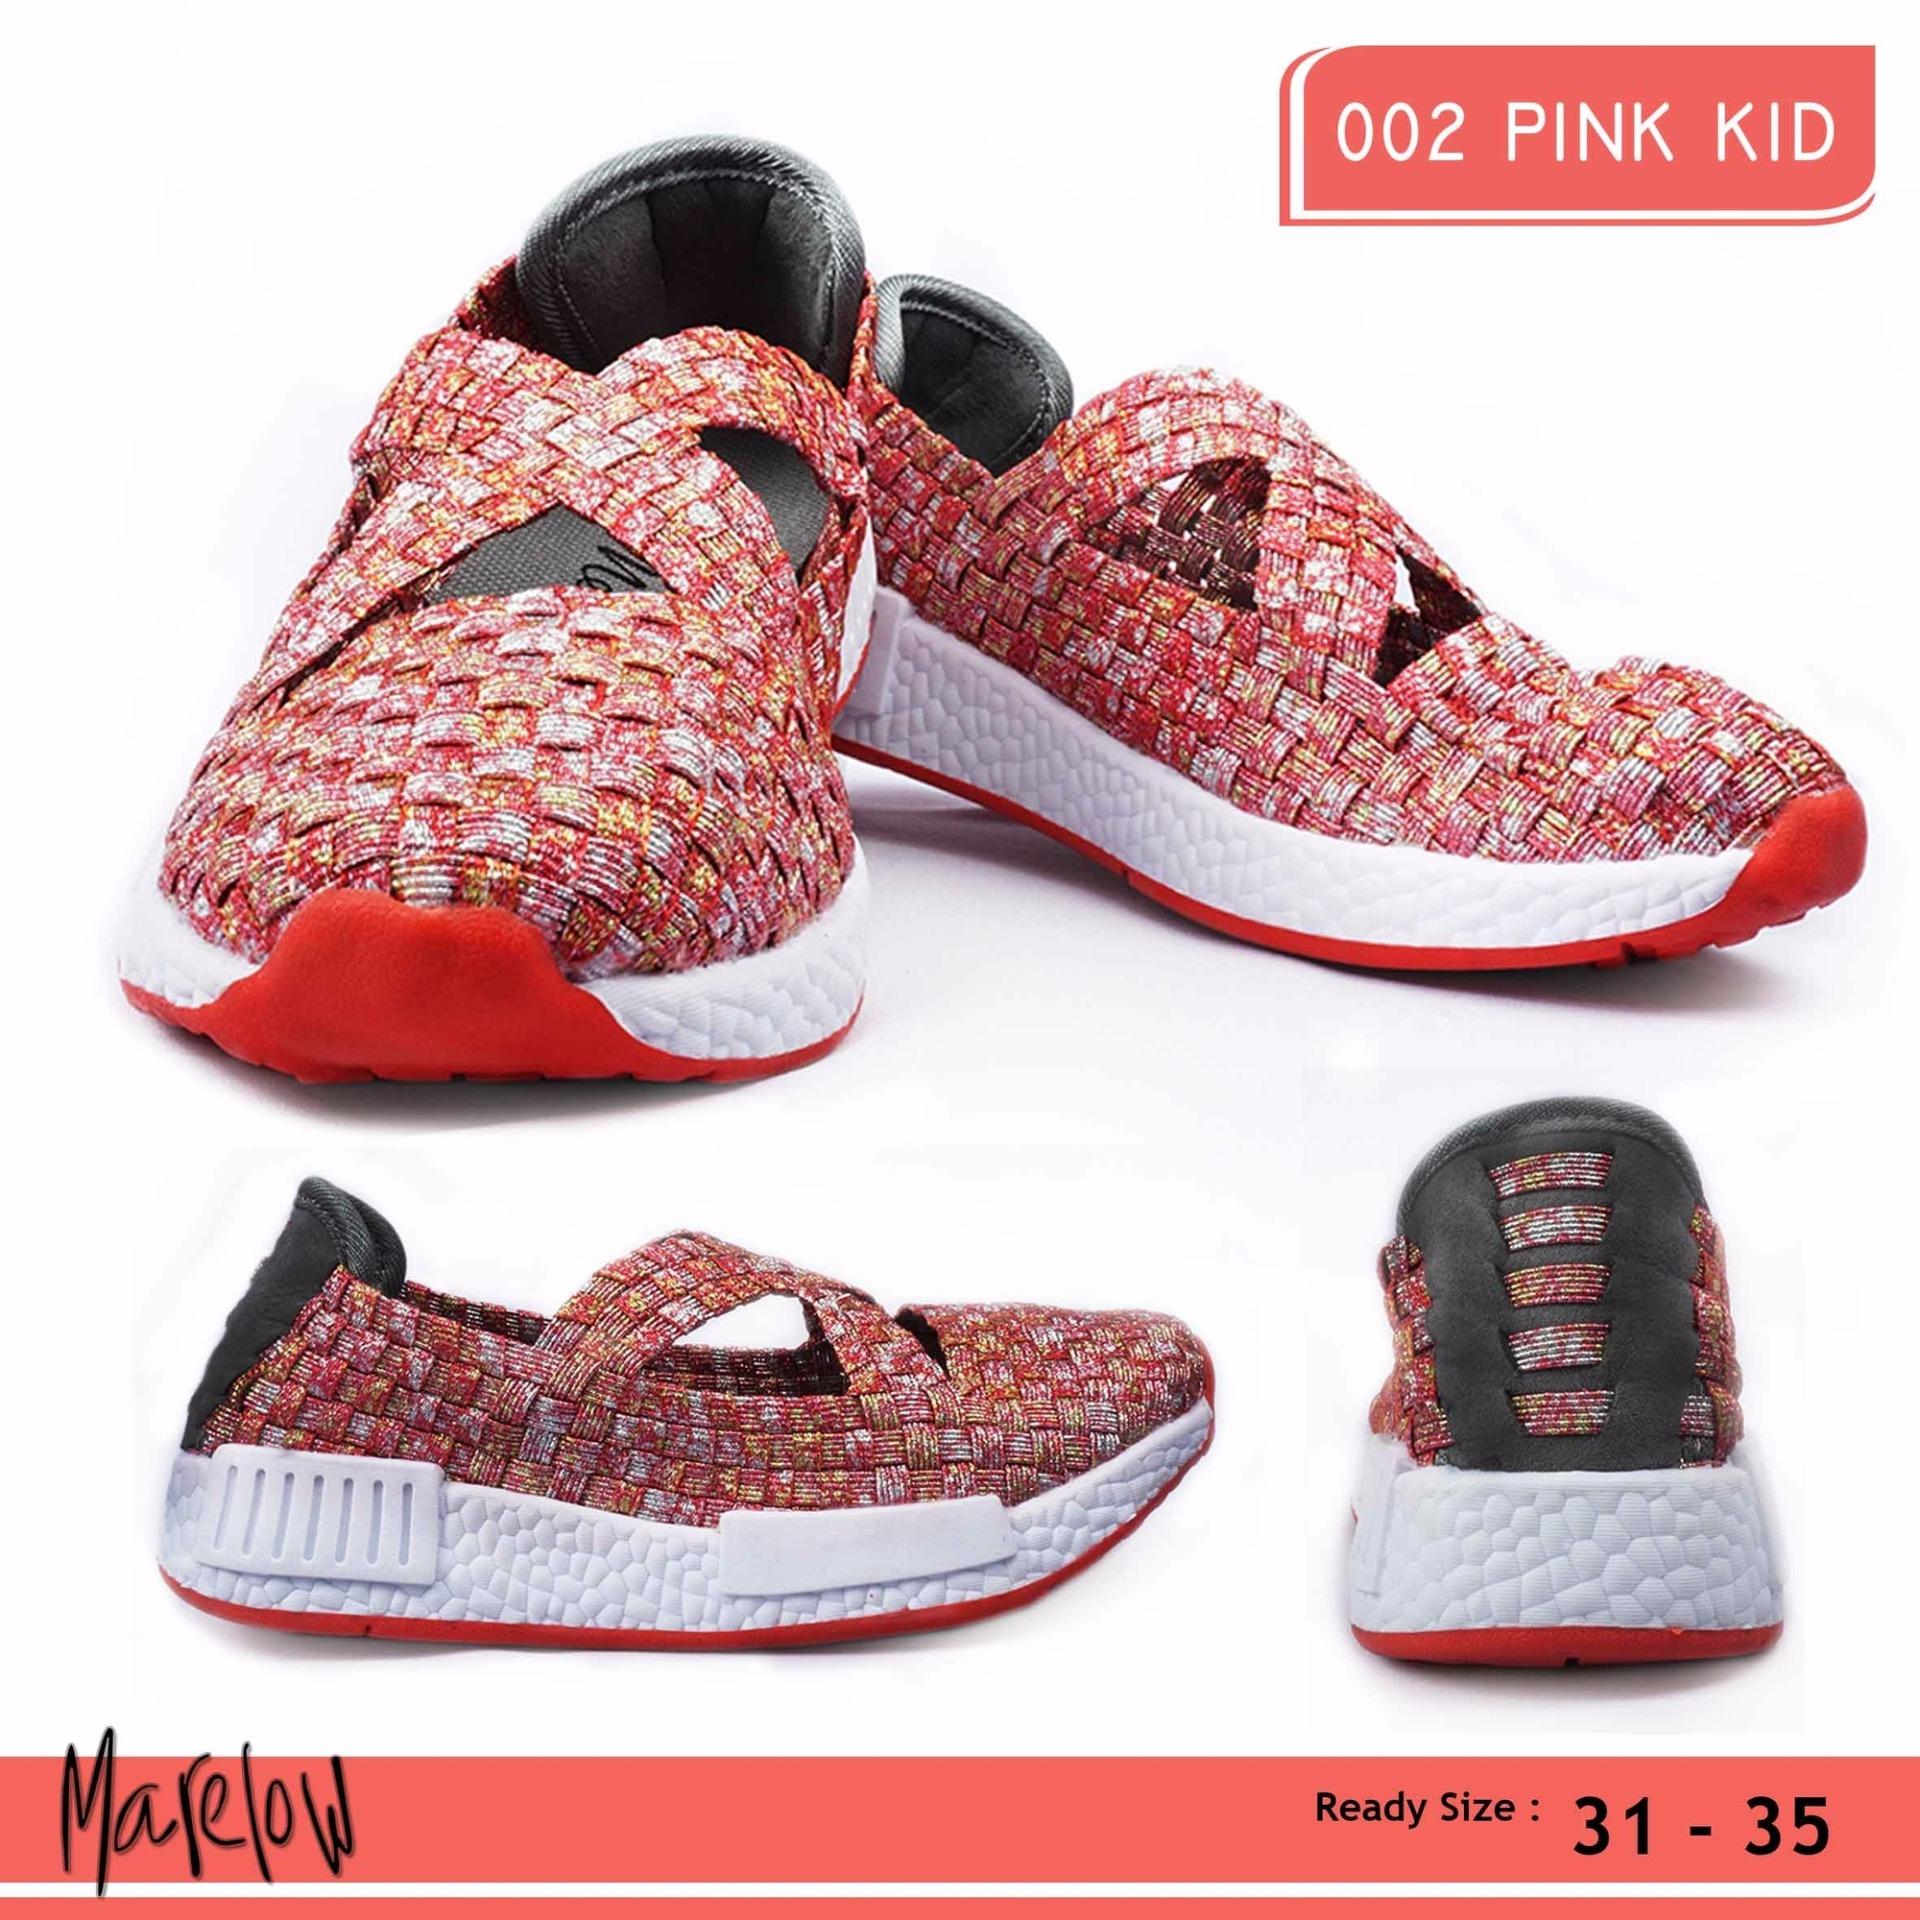 MERLIN, Sepatu Anak Casual Slip On Import - 002 PINK KIDS